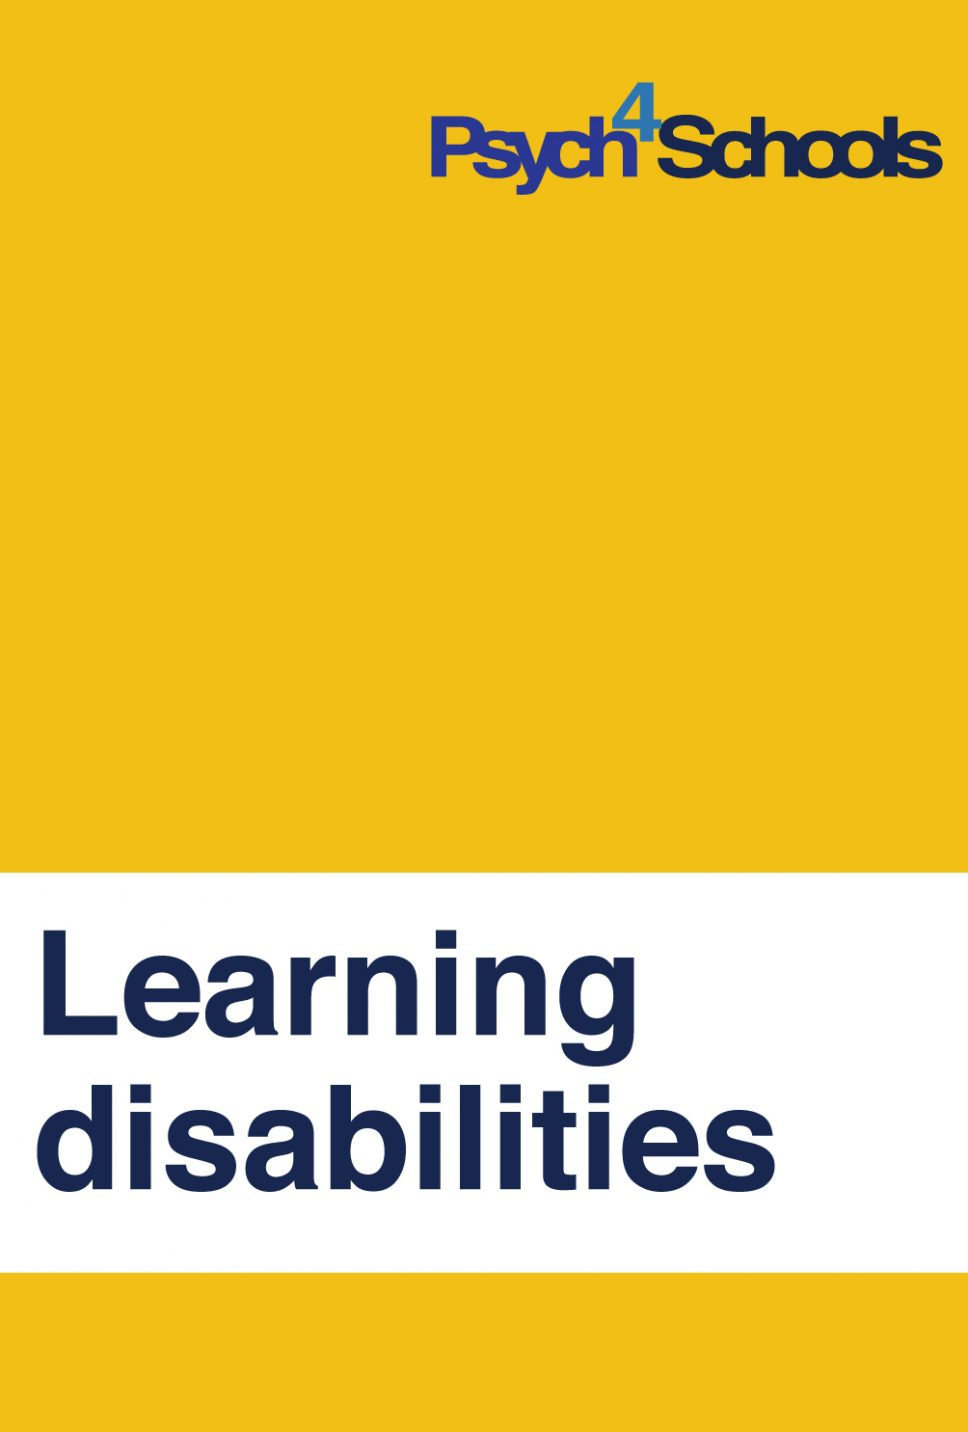 LEARING-DISABILITIES